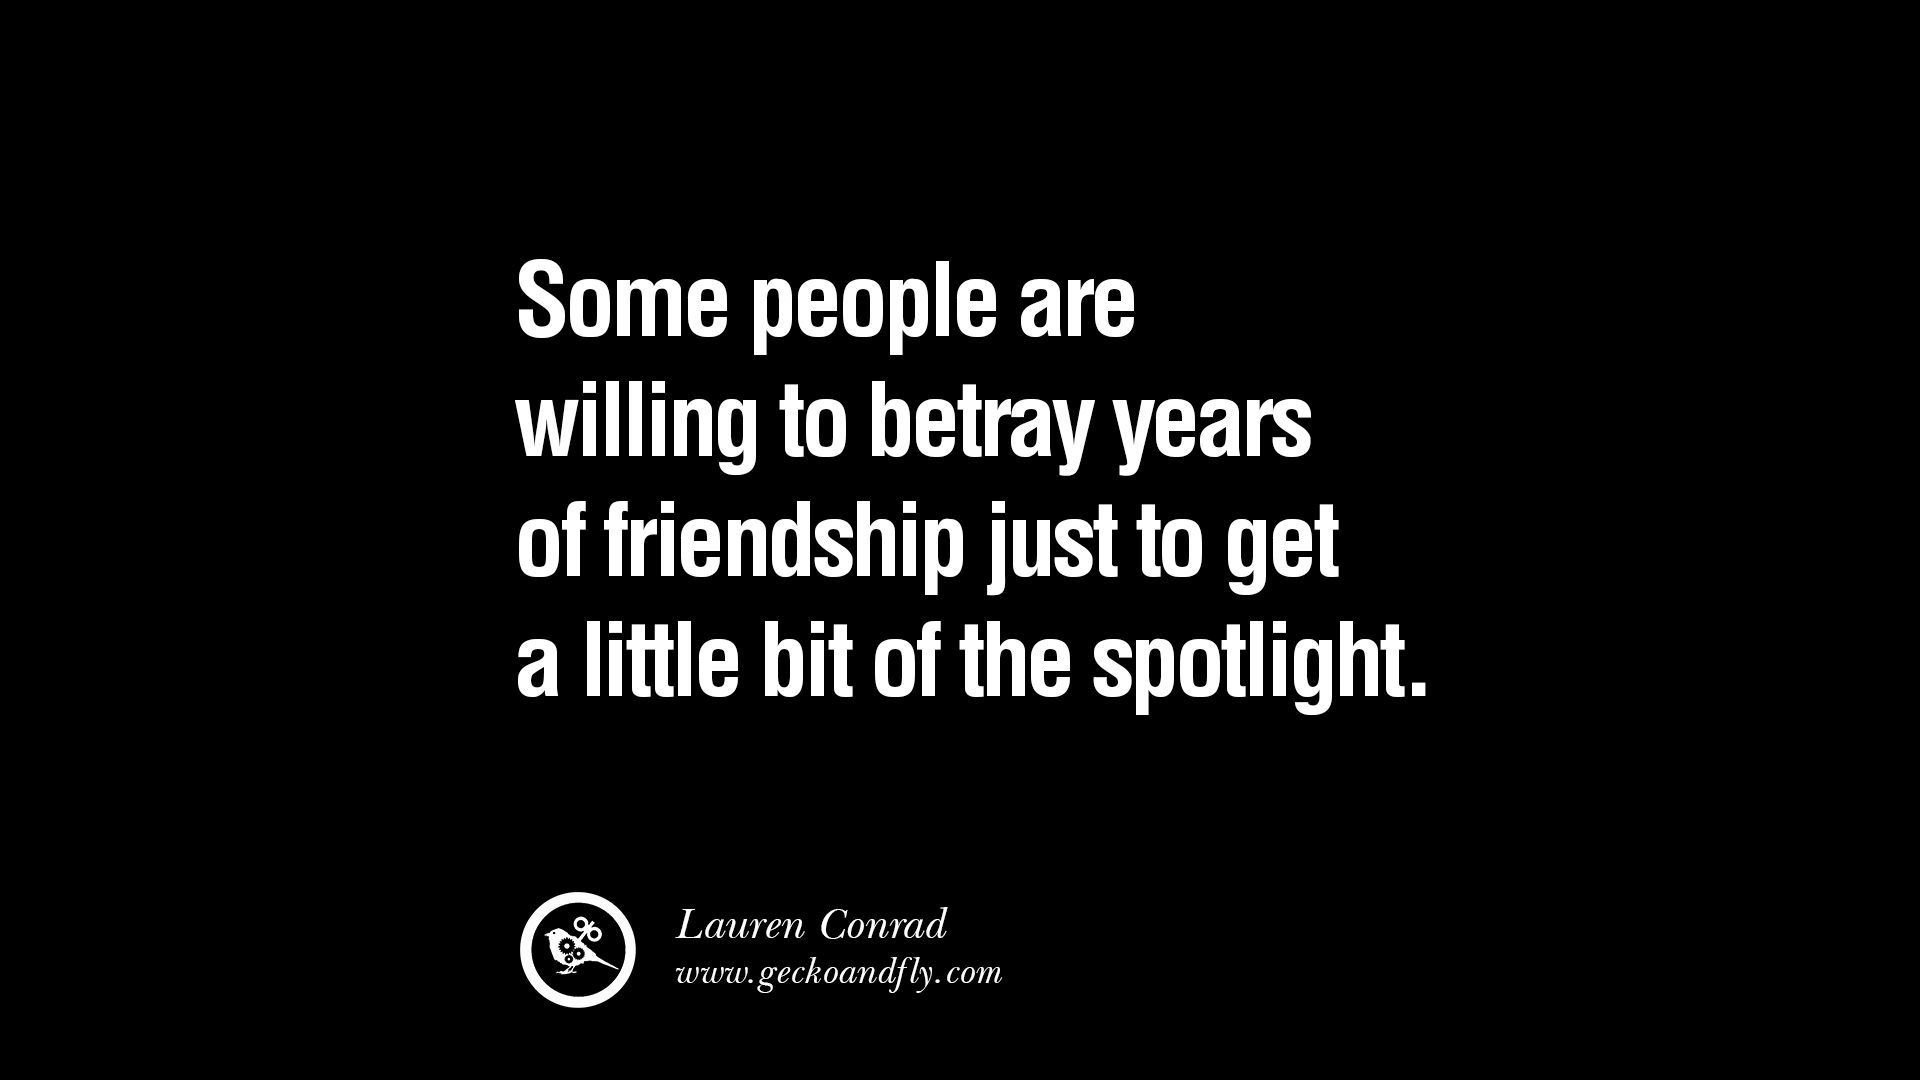 Dumping You Relationship Quotes Quotesgram: Betrayal In A Relationship Quotes. QuotesGram